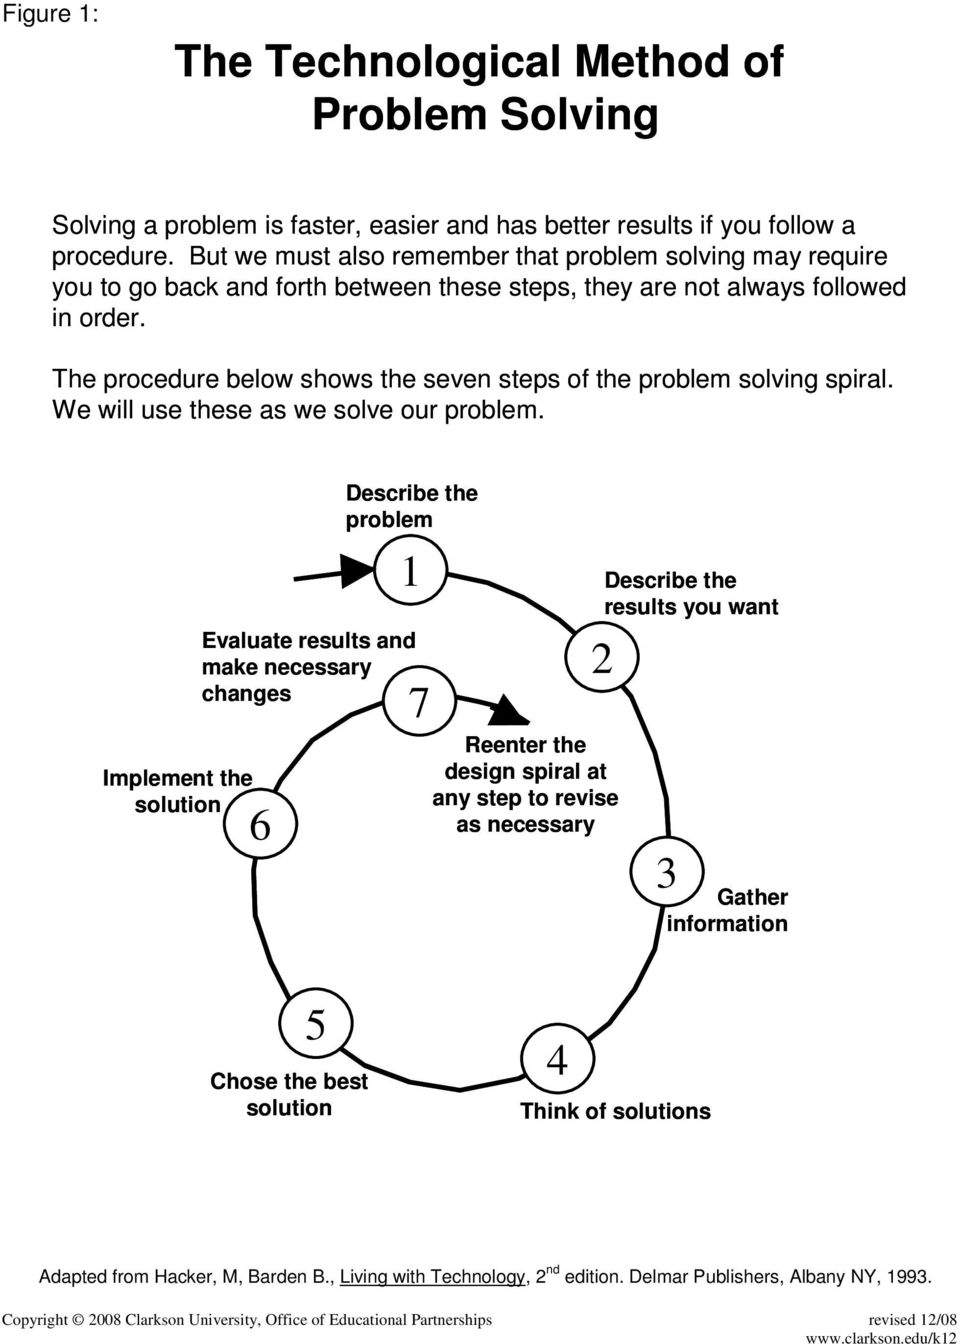 The procedure below shows the seven steps of the problem solving spiral. We will use these as we solve our problem.